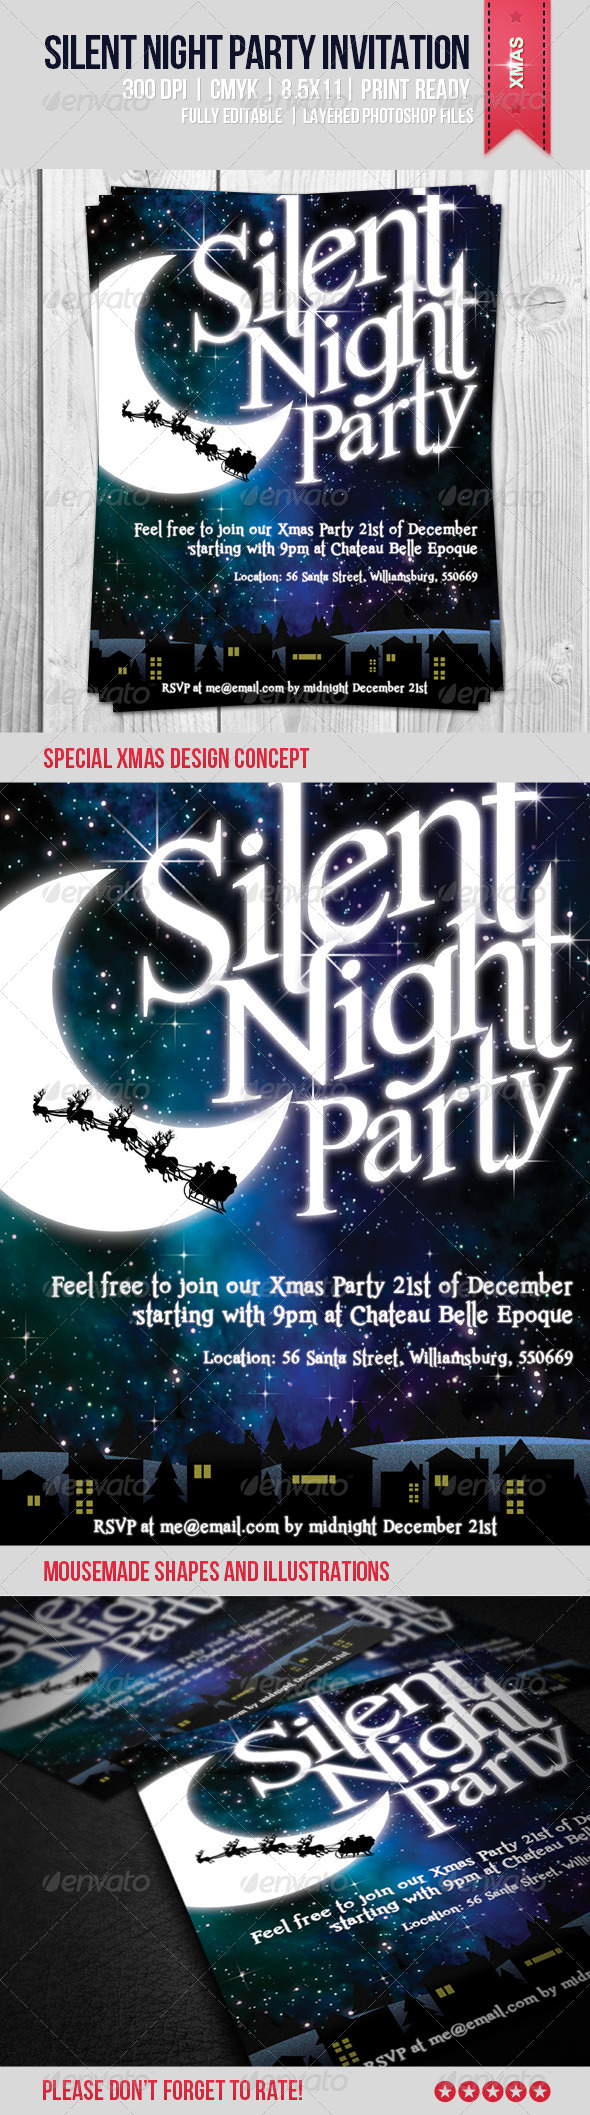 GraphicRiver Silent Night Party Invitation 6046975